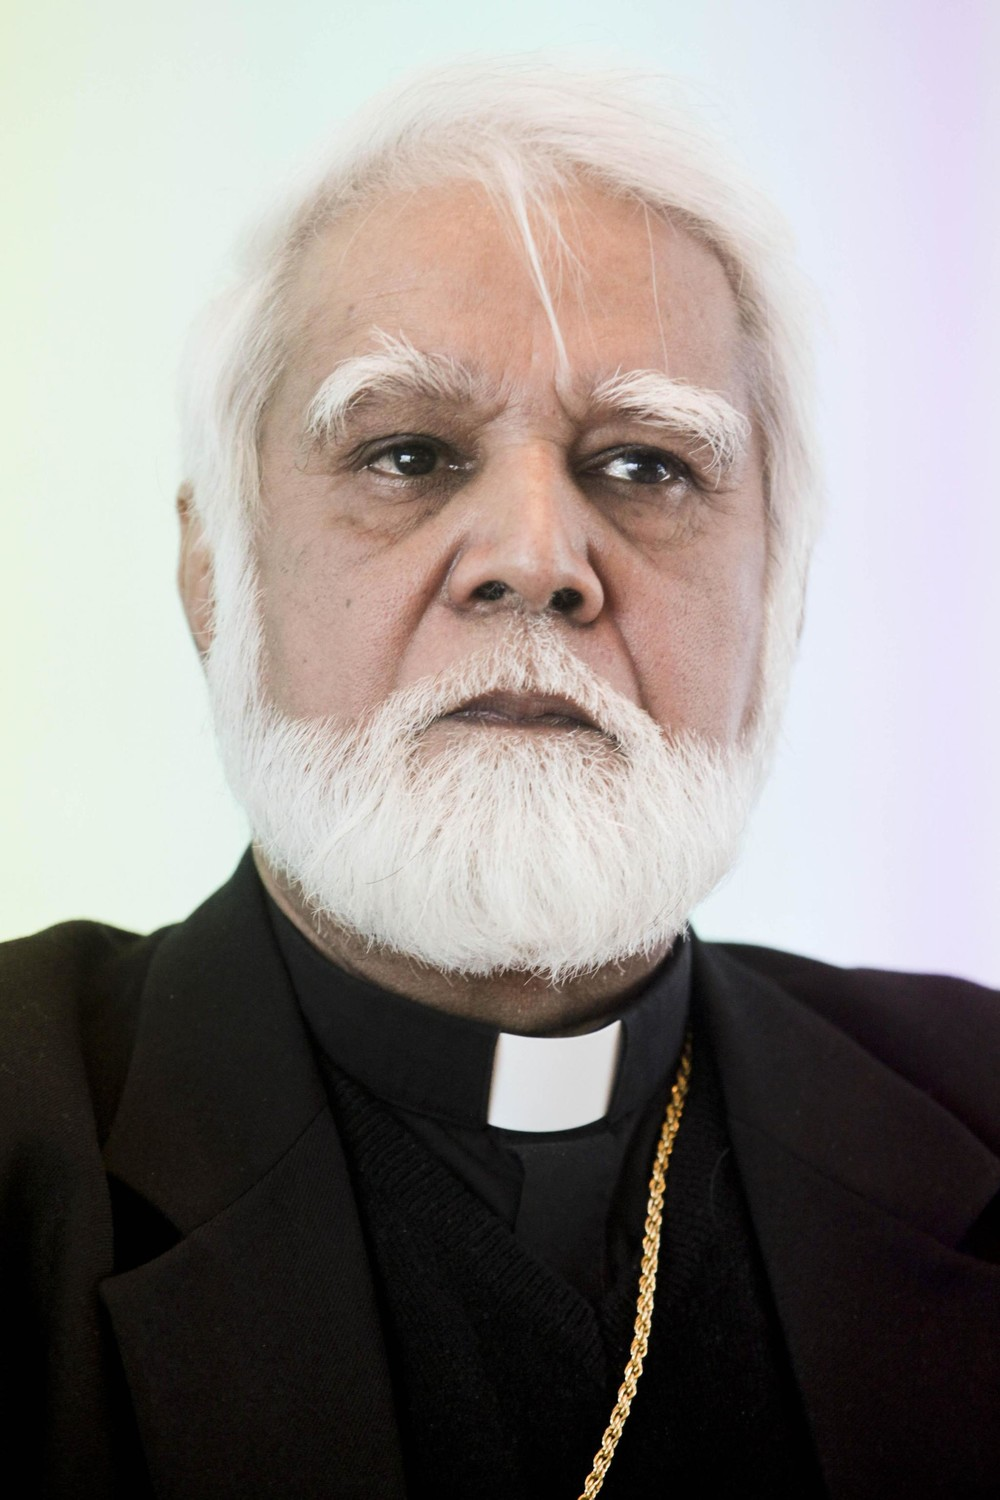 Archbishop Joseph Coutts of Karachi, Pakistan, was one of 14 new cardinals named by Pope Francis May 20. He is pictured speaking during a meeting in Milan, Italy, March 2, 2016.